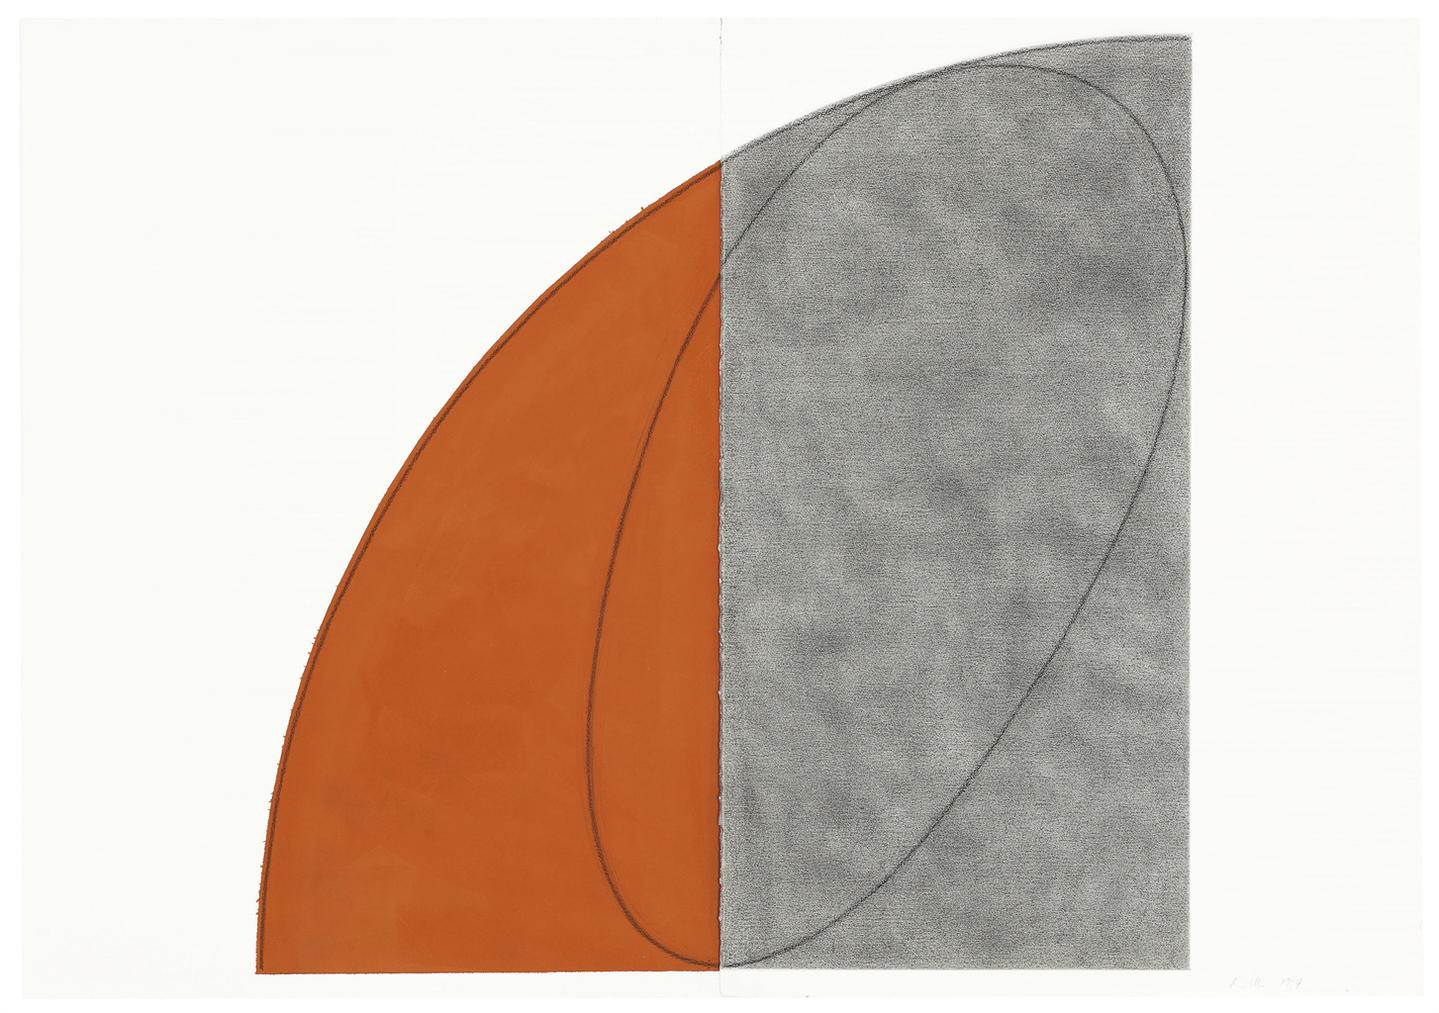 Robert Mangold-Curved Plane/Figure-1994